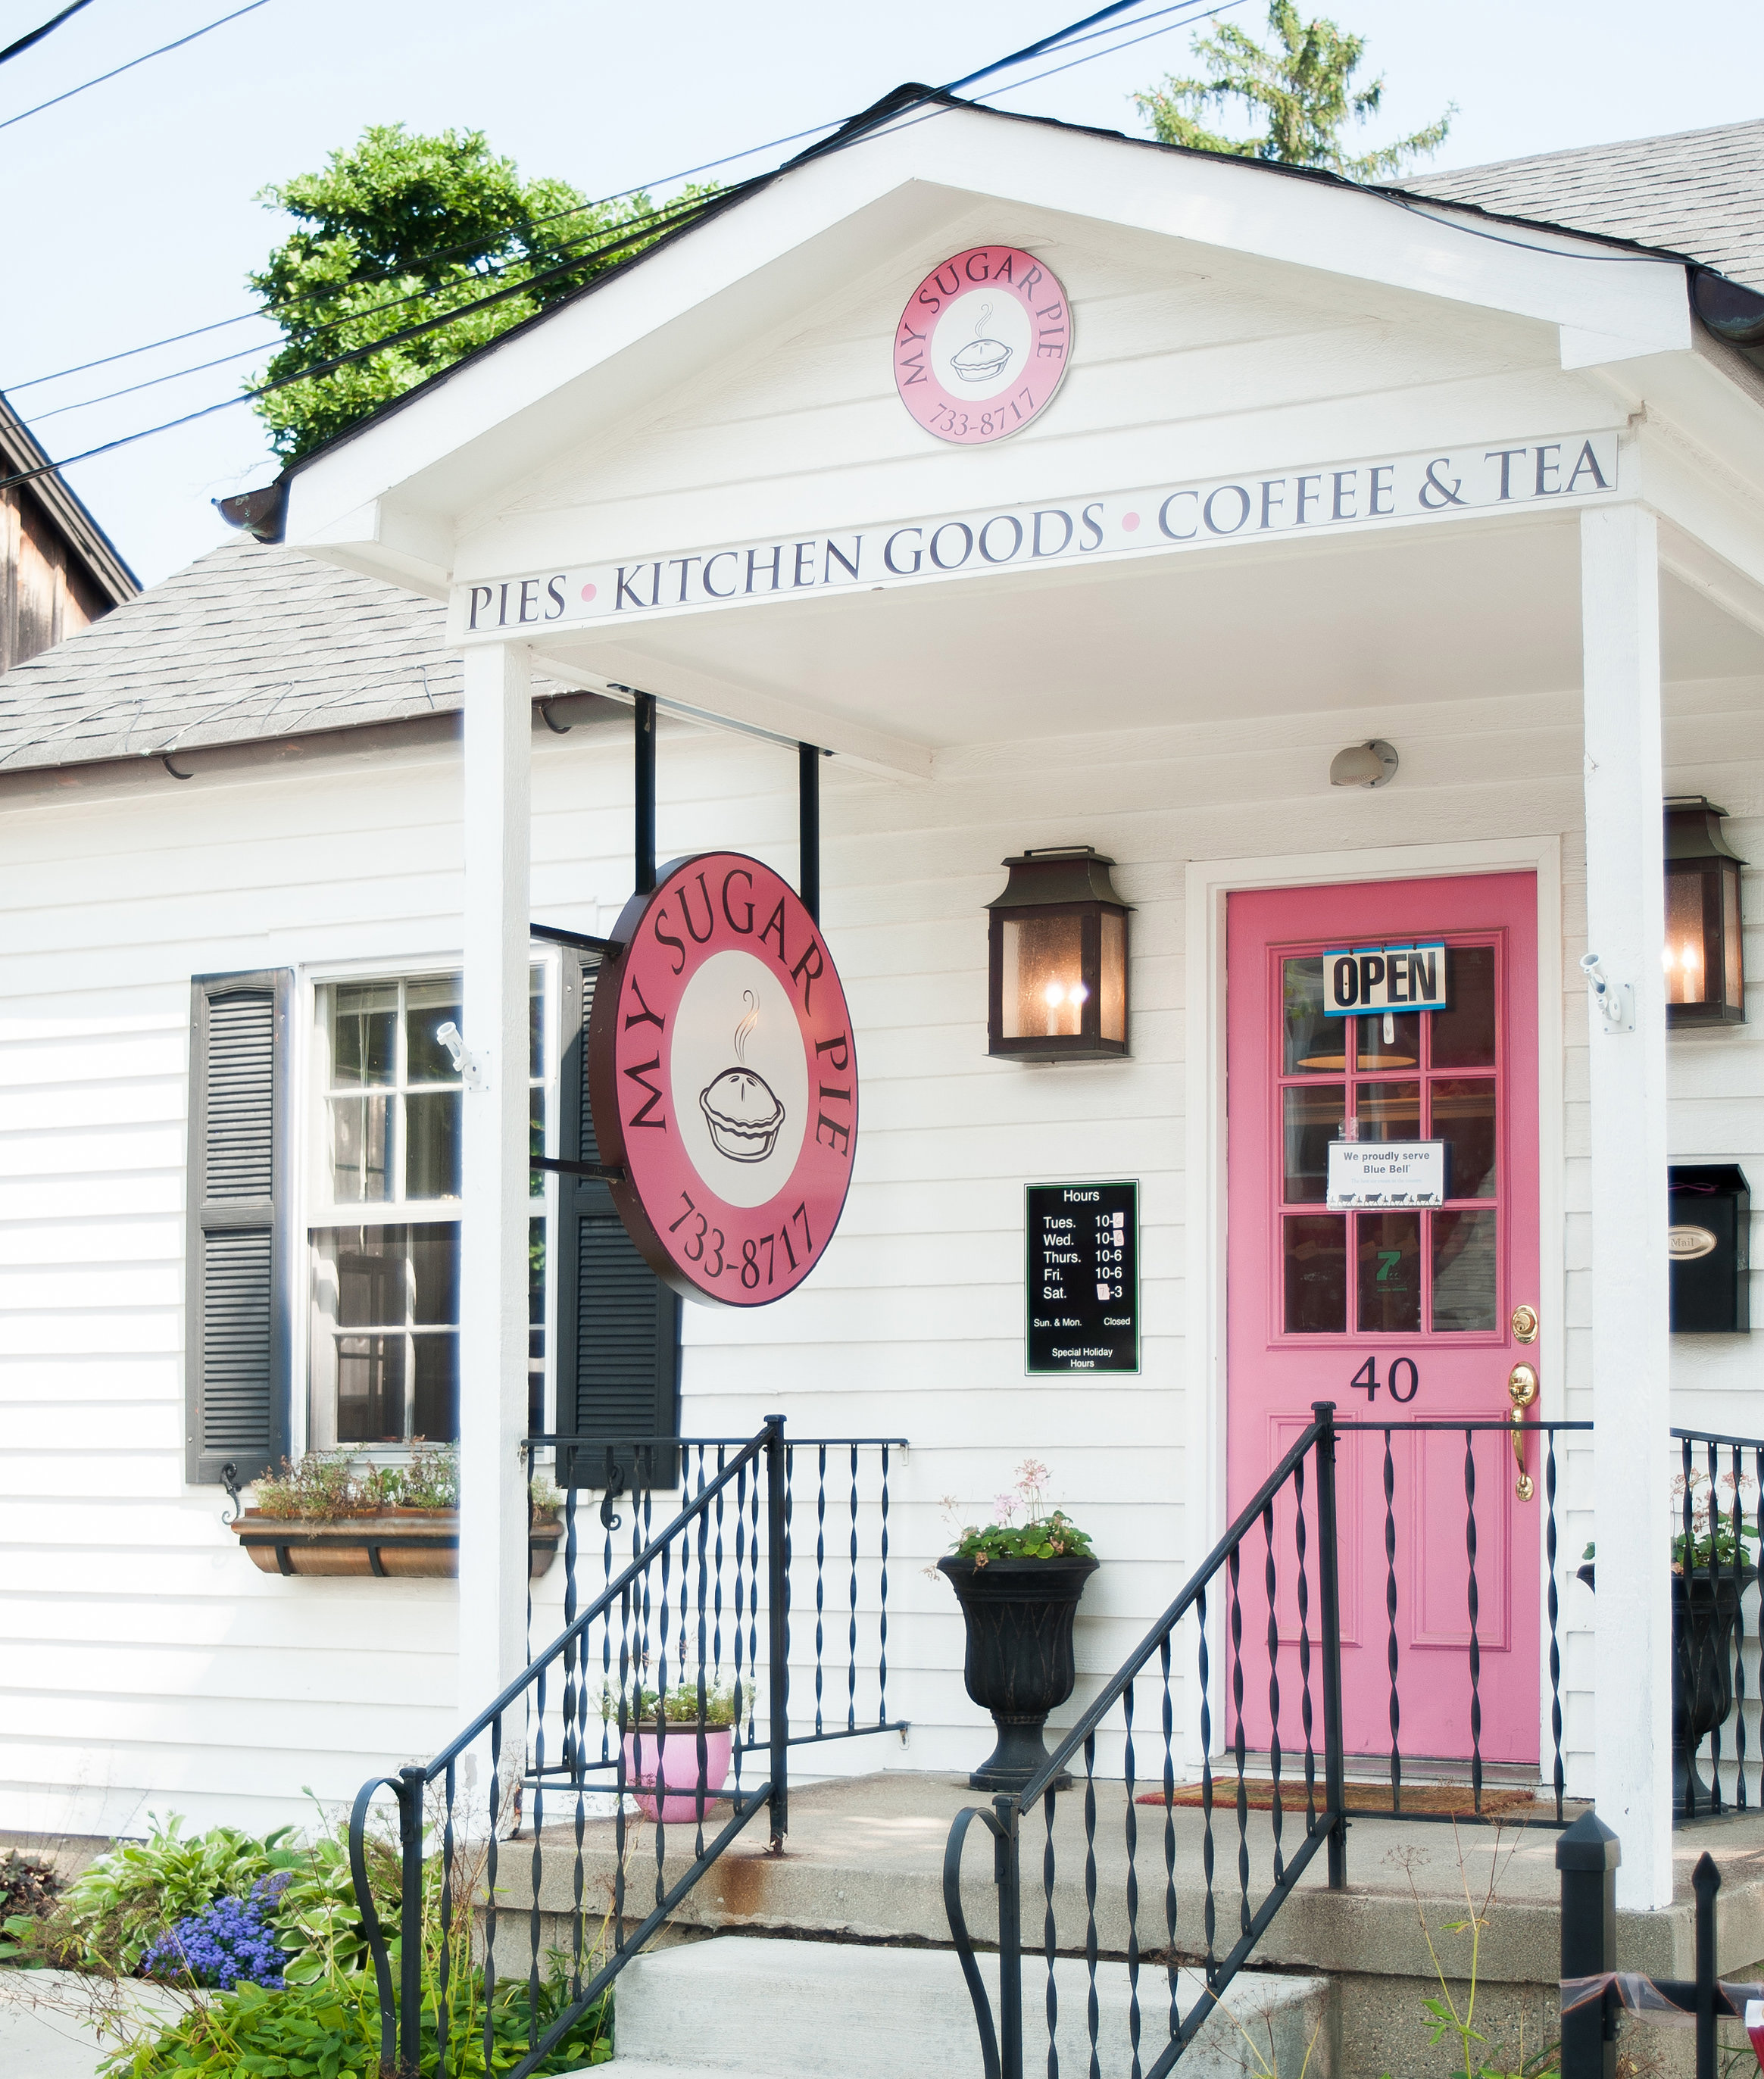 My Sugar Pie is at 40 E. Pine St. in Zionsville. They can be reached at 733-8717 or at www.mysugarpie.com. (Photo by Allison Mayer)